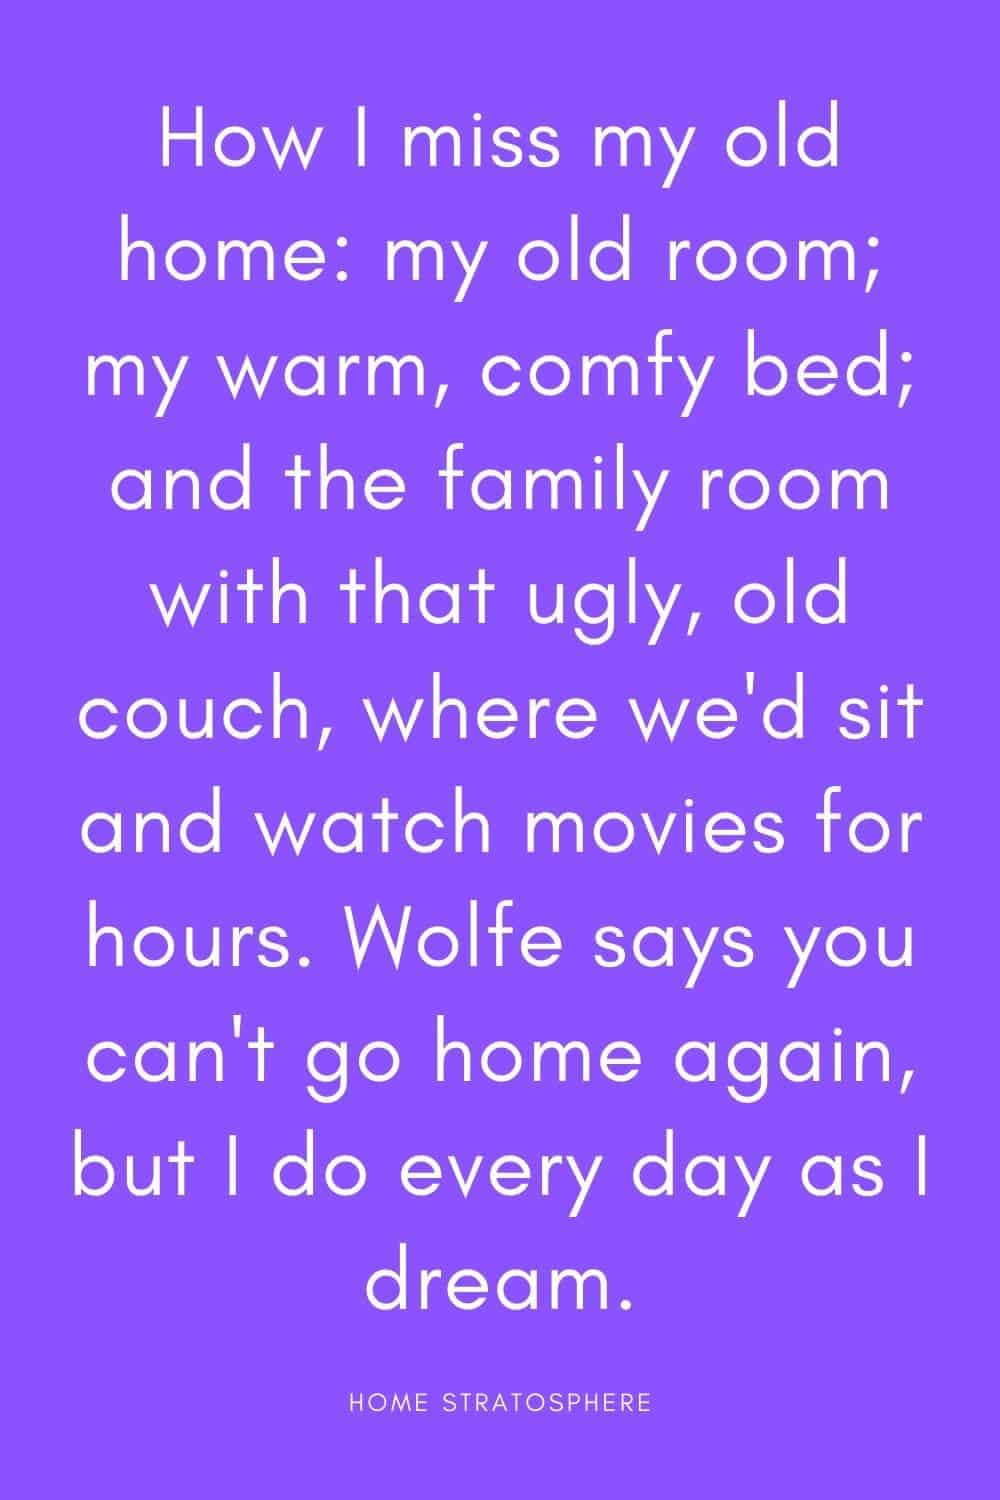 """How I miss my old home: my old room; my warm, comfy bed; and the family room with that ugly, old couch, where we'd sit and watch movies for hours. Wolfe says you can't go home again, but I do every day as I dream."""